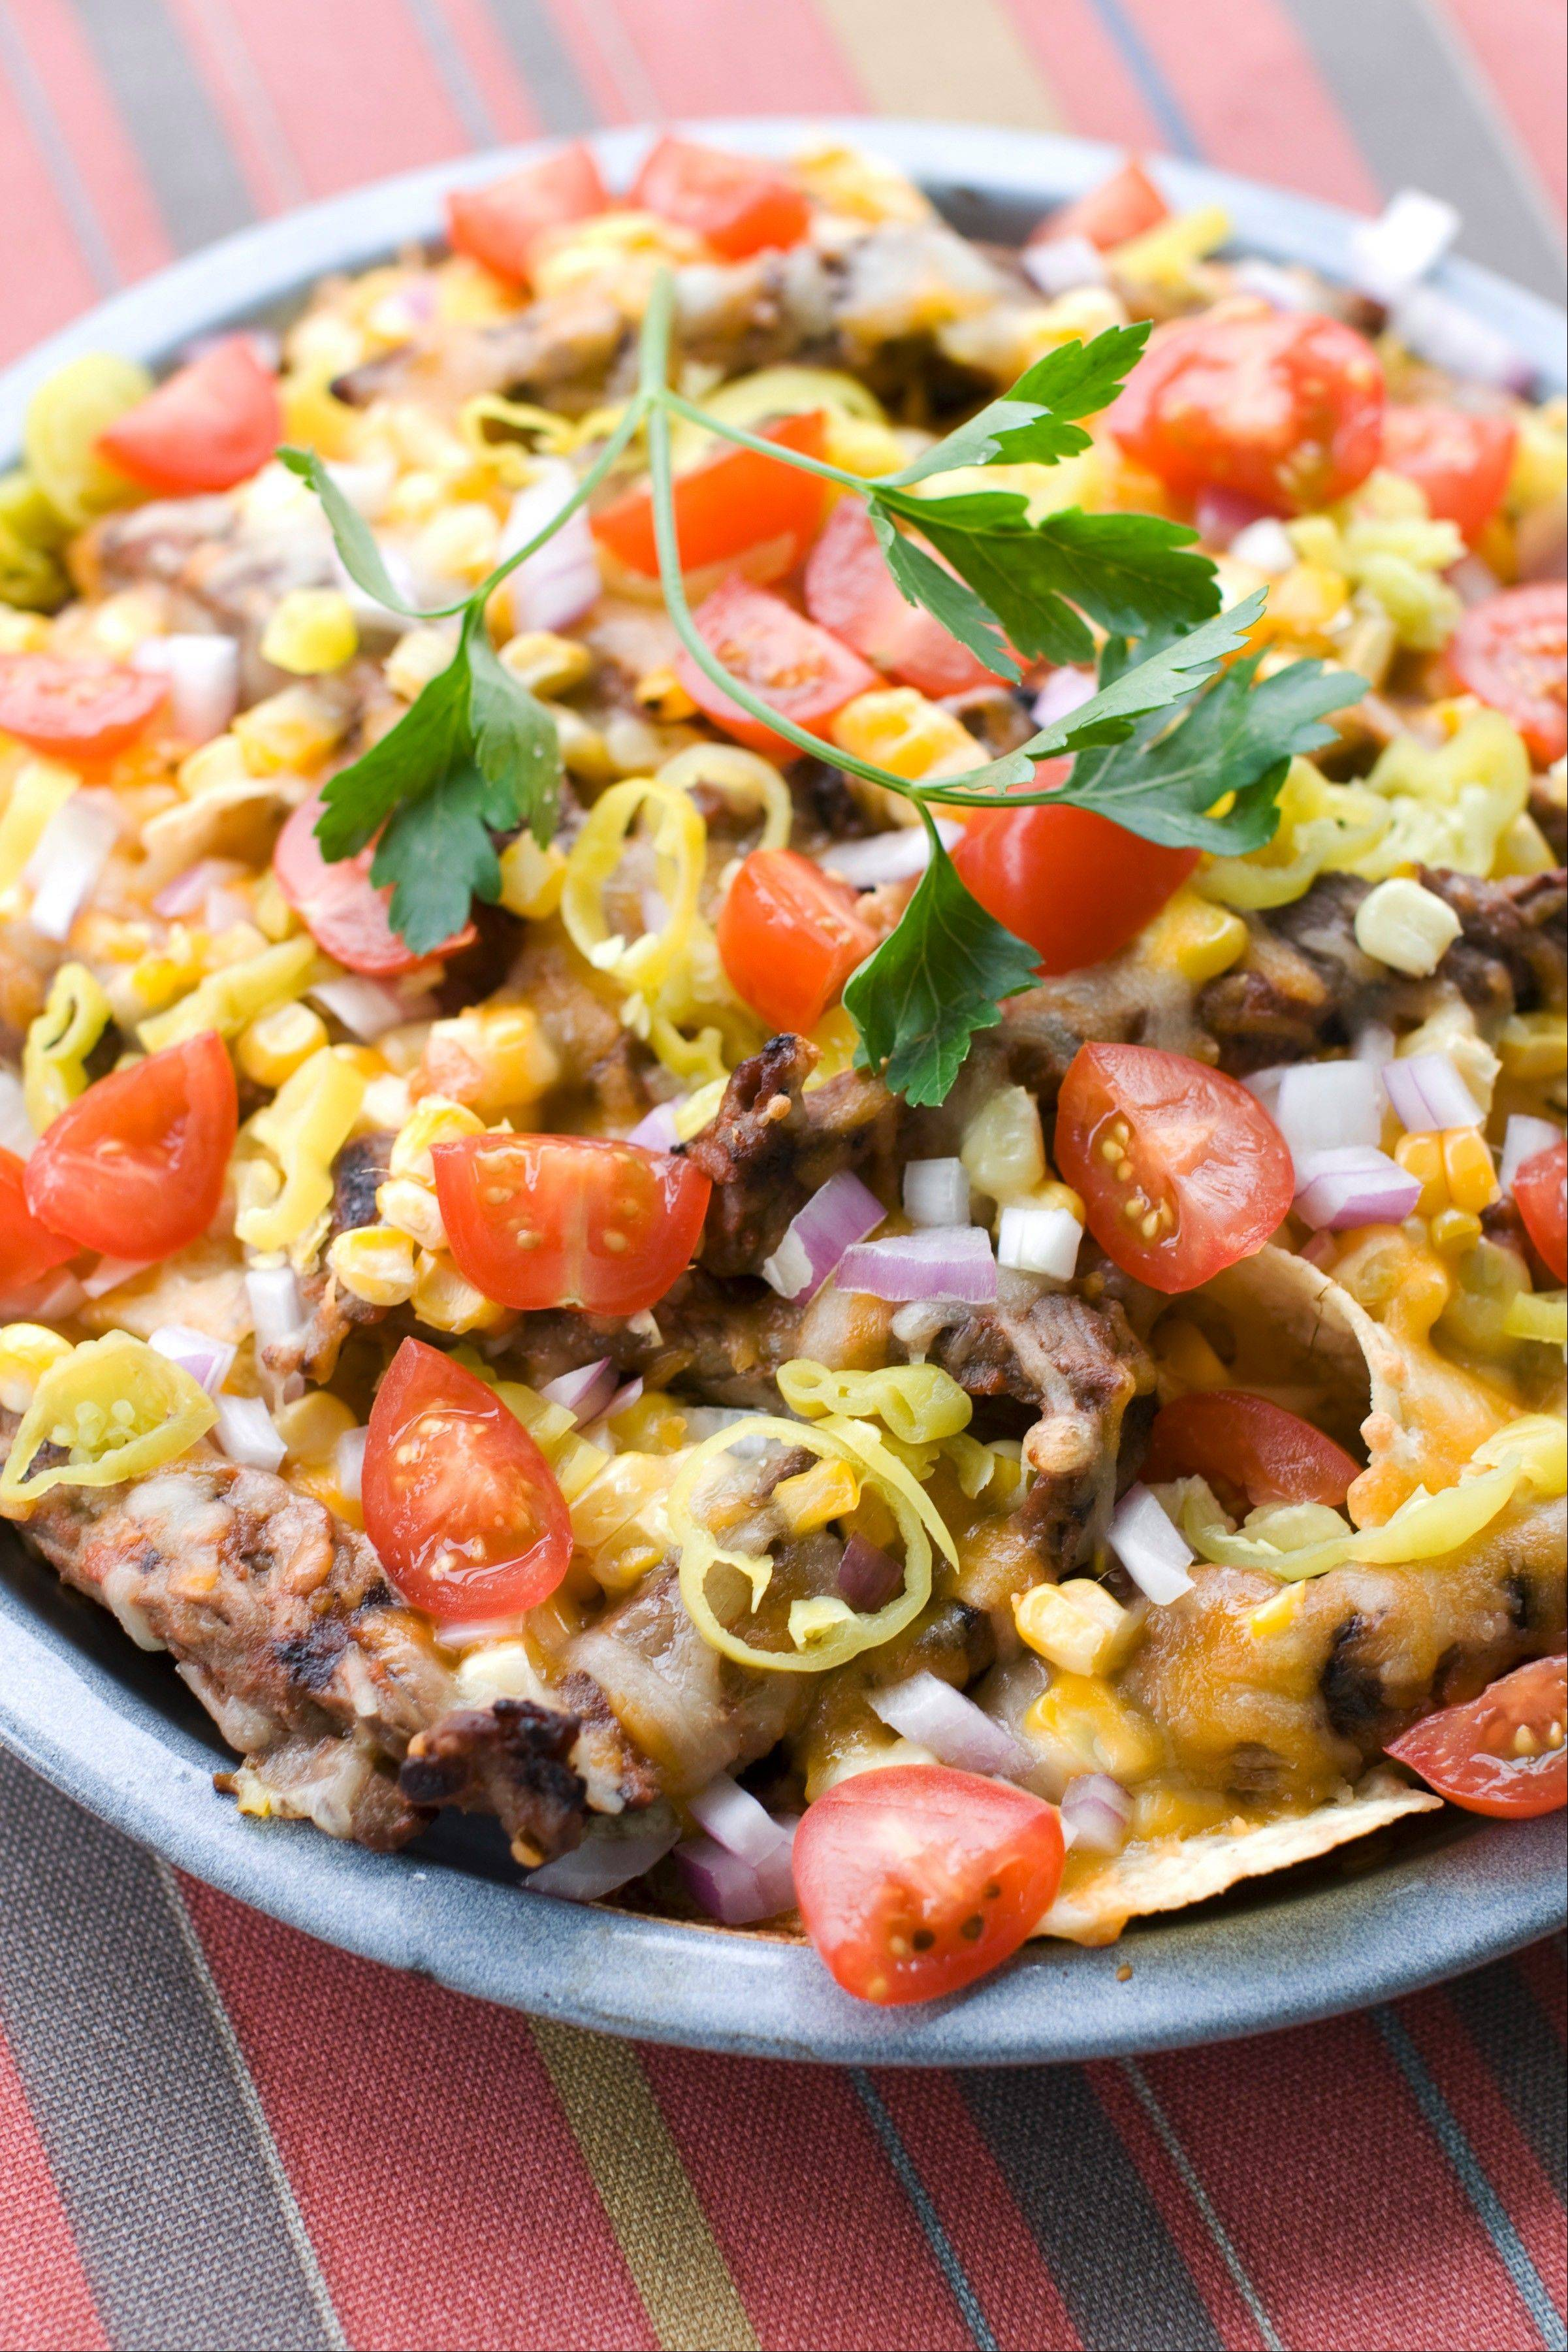 A grill turns nachos from a humdrum snack into a specatular meal.